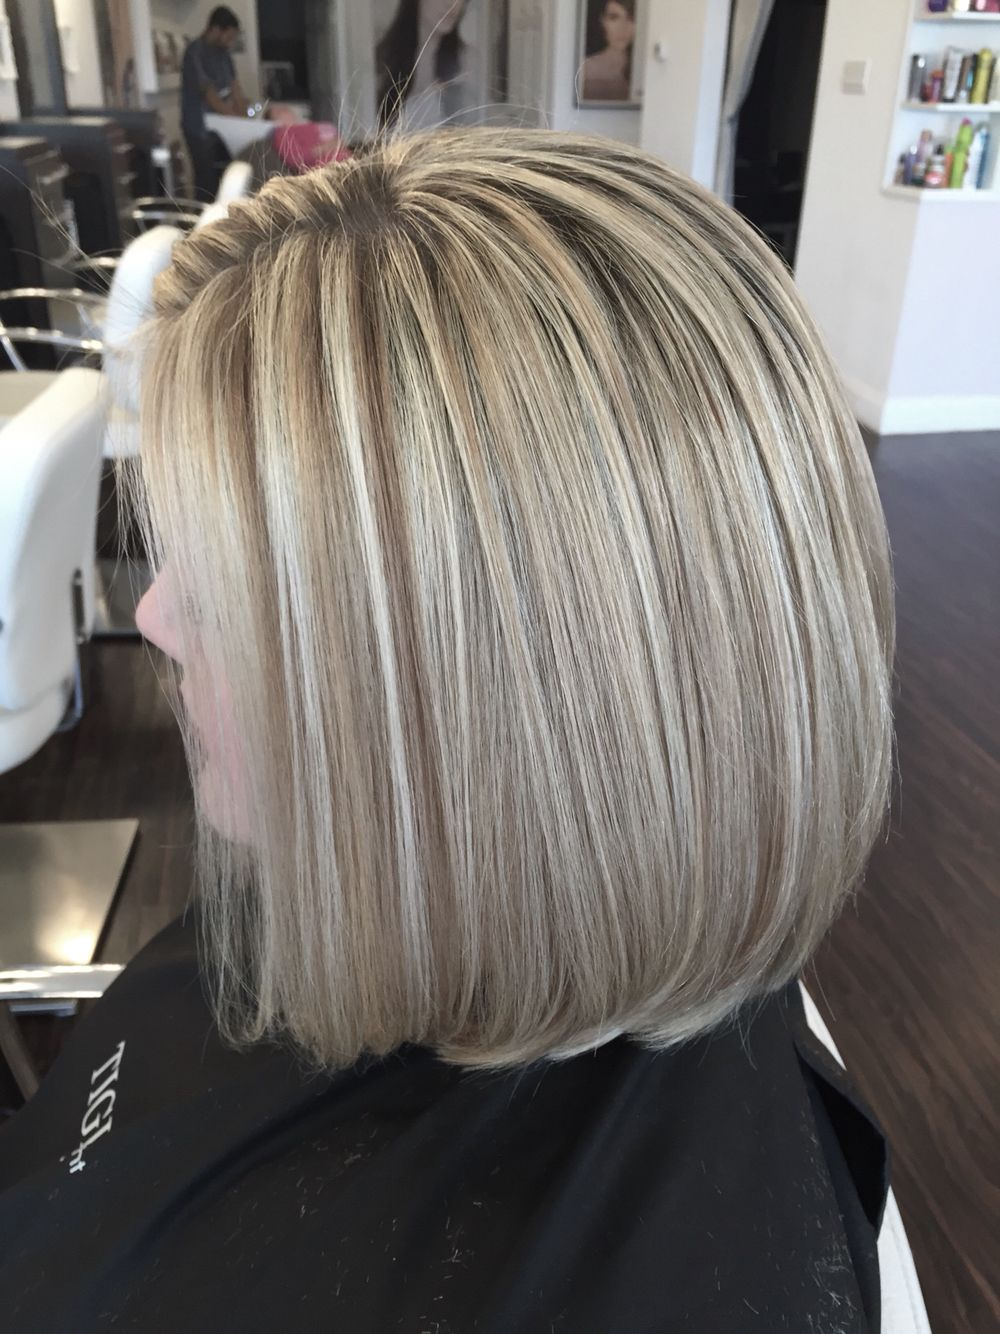 Blonde highlights and bob haircut. No toning needed #olaplex